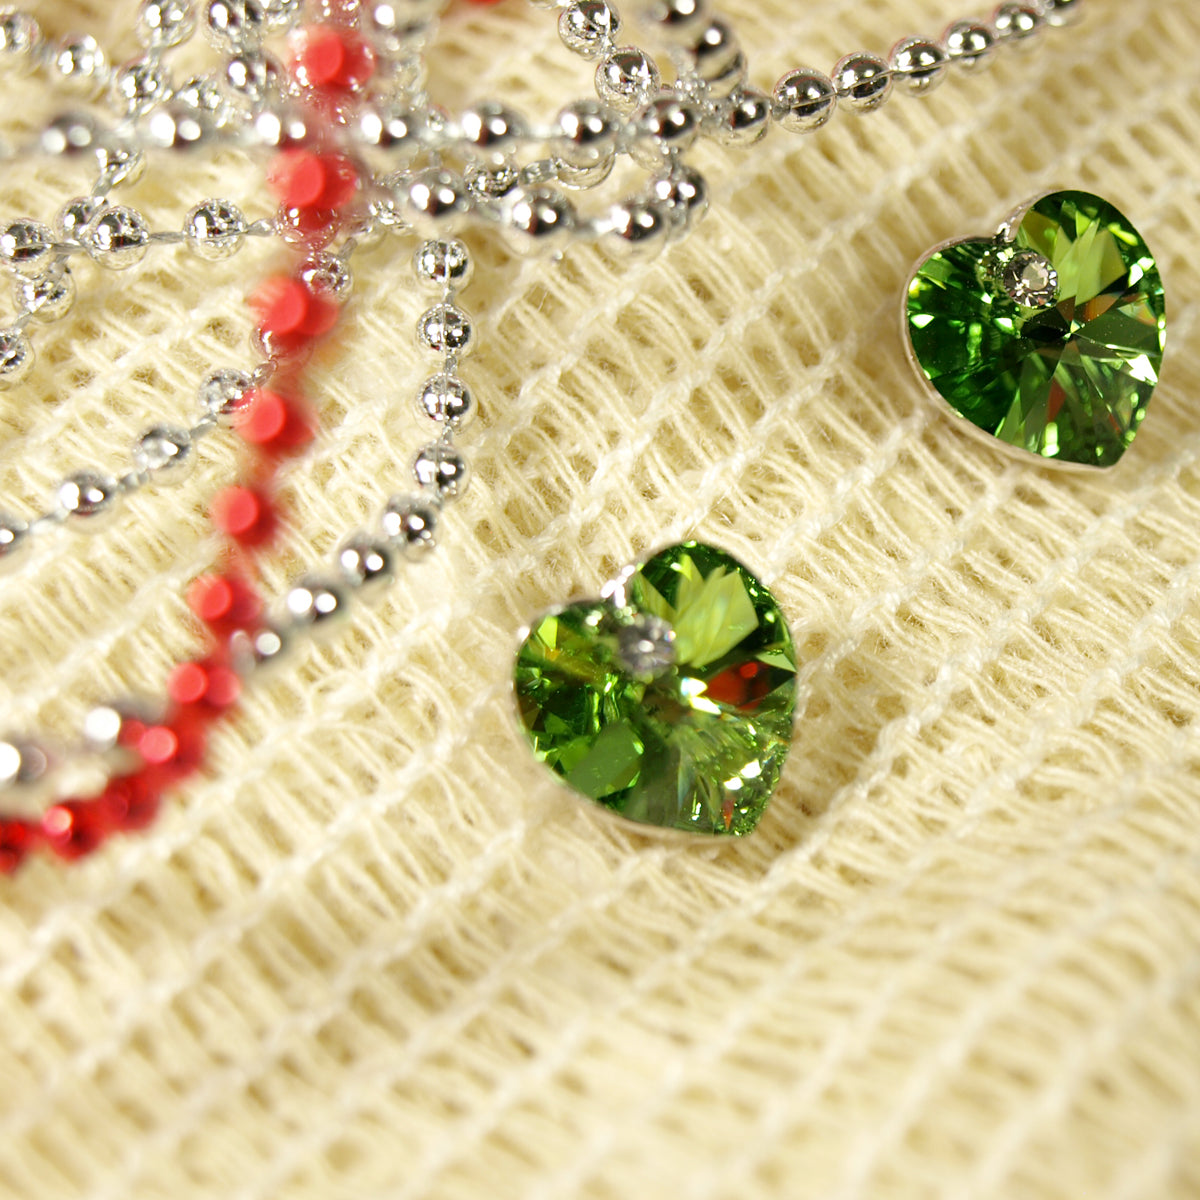 Green Swarovski Elements Crystal Heart Gold Plated Stud Earrings + Large Burgundy Silk Embroidered Jewelry Roll